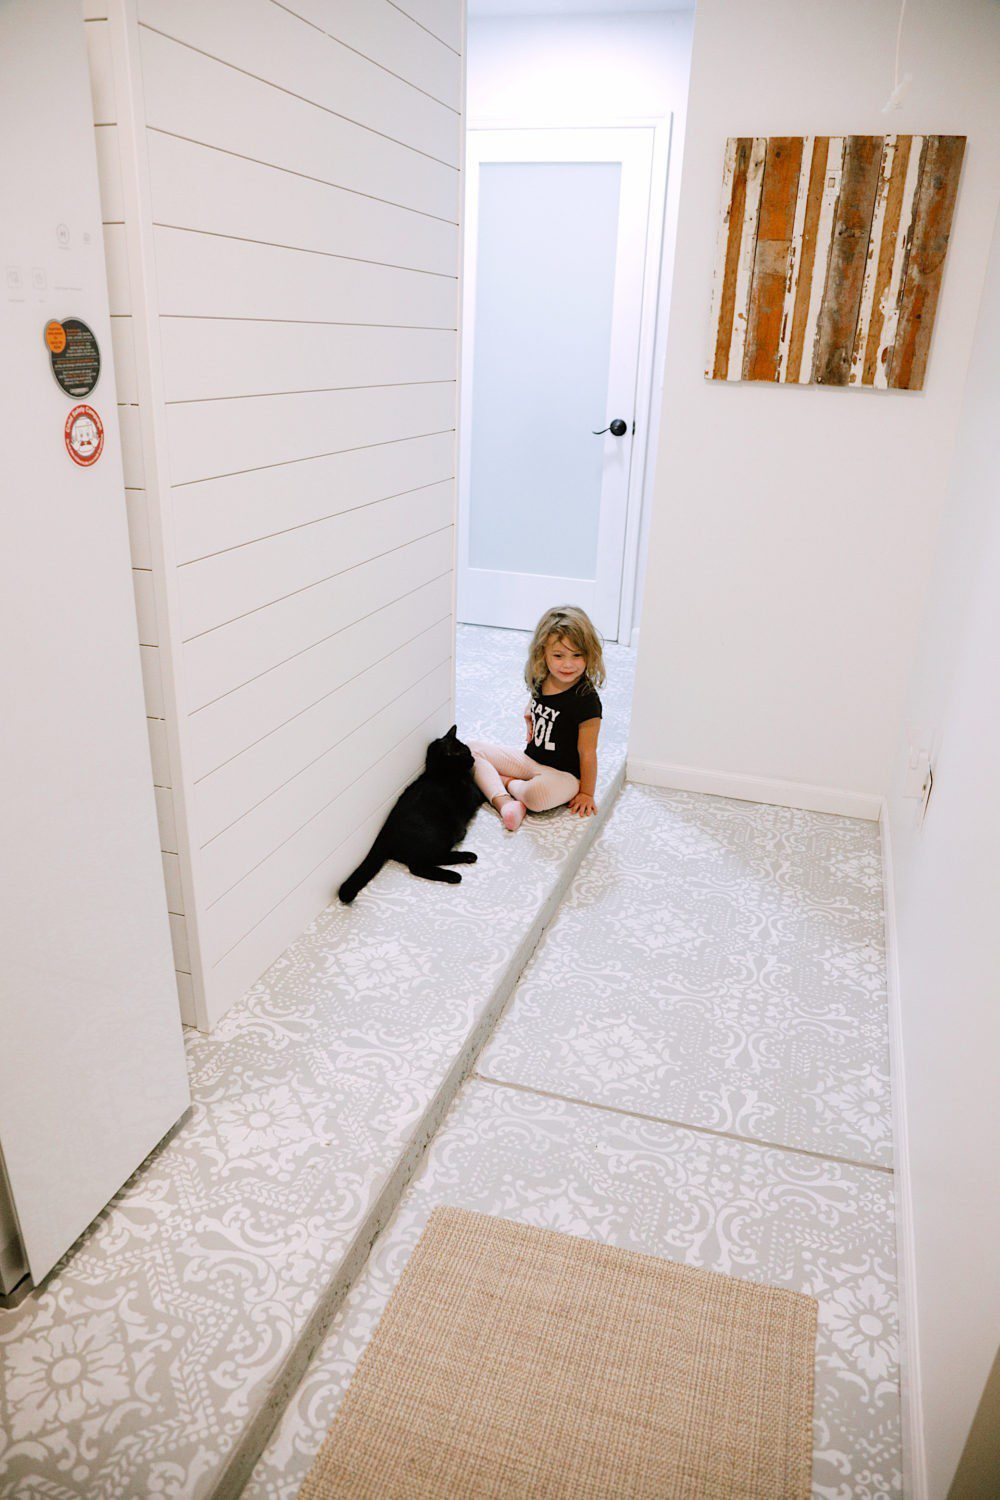 How We Designed a Family Friendly Laundry Room in our Garage - The Reveal! Stenciled floors, DIY covers for breaker boxes and utilities, large capacity appliances, organization tips and more! | Laundry Room DIY: How to Paint a Cement Floor with Stencils by popular home decor blog, Fresh Mommy: image of a laundry room with a painted cement floor.